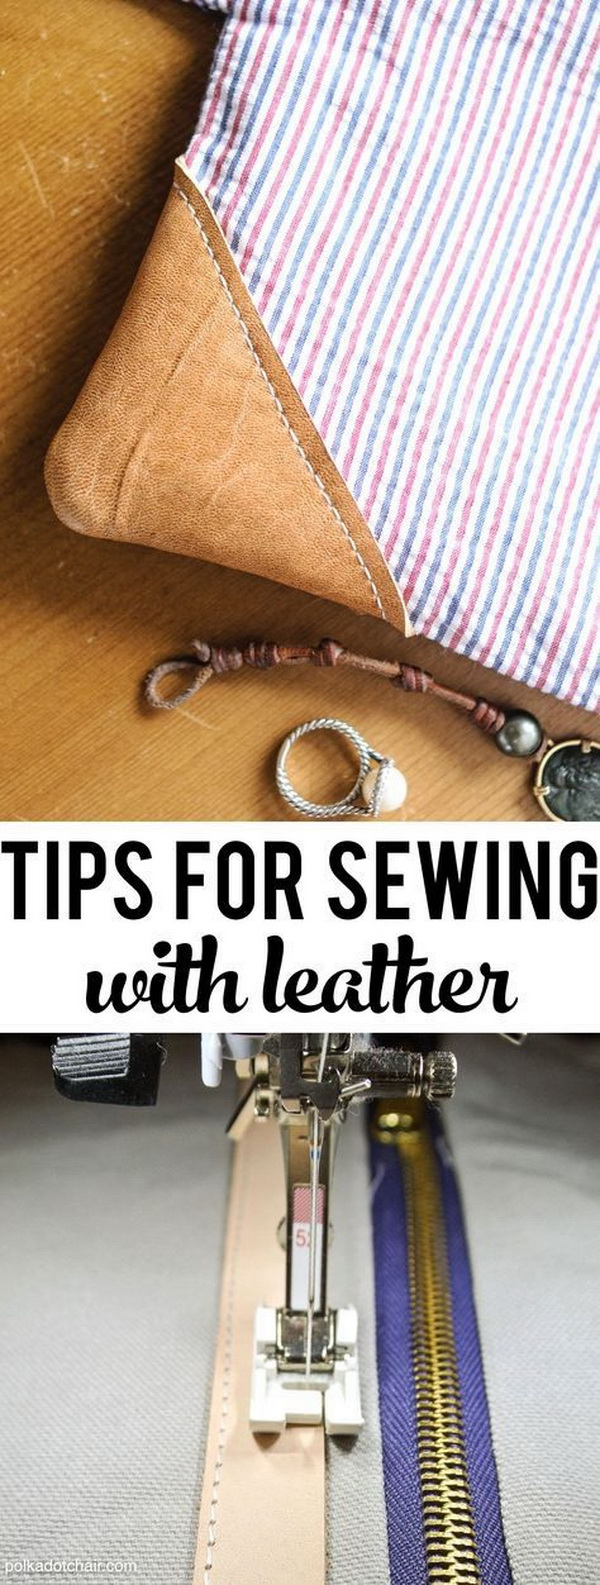 Sewing Hacks: How to Sew with Leather.